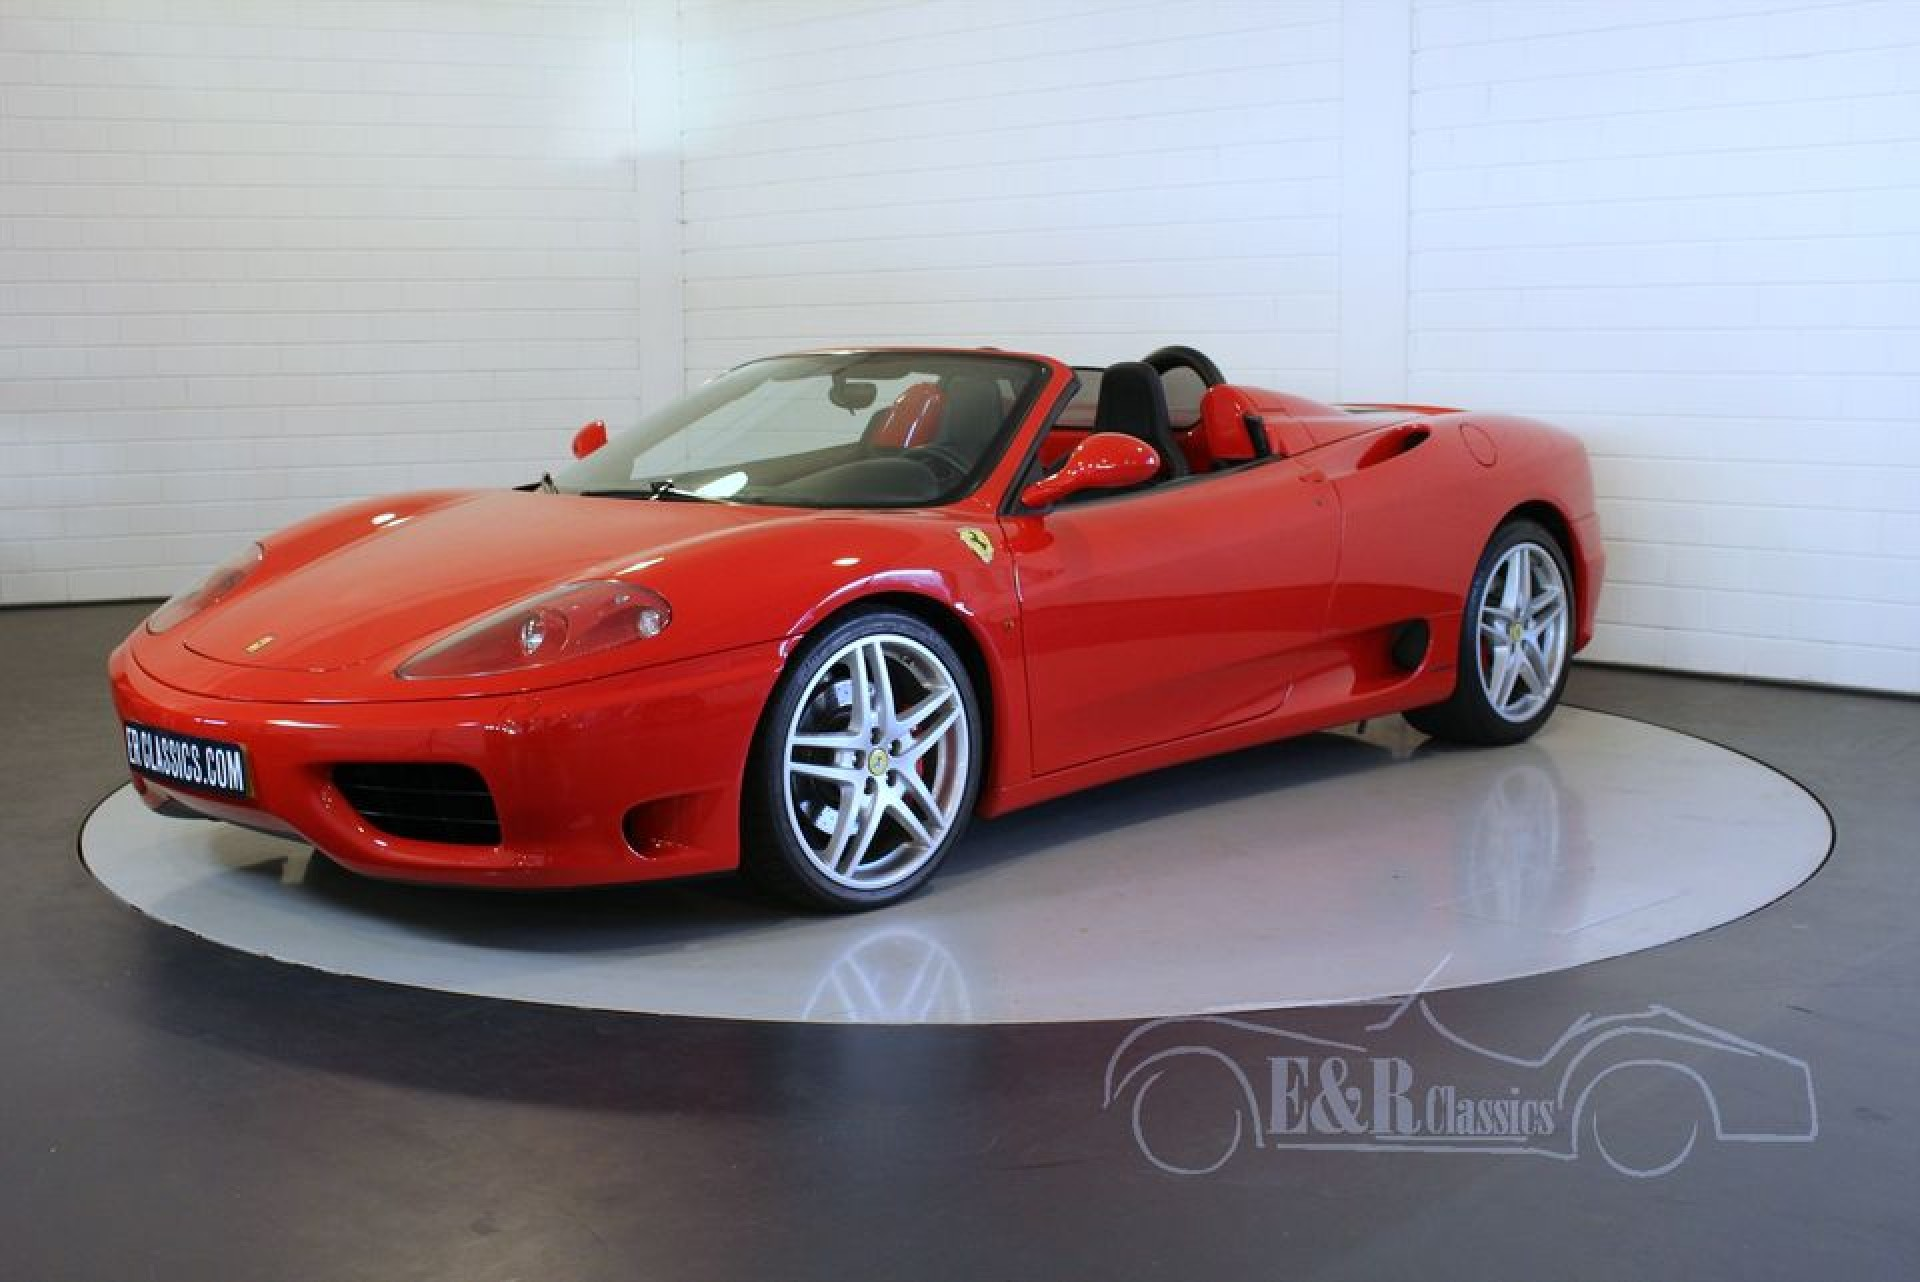 ferrari 360 spider f1 2002 zum kauf bei erclassics. Black Bedroom Furniture Sets. Home Design Ideas